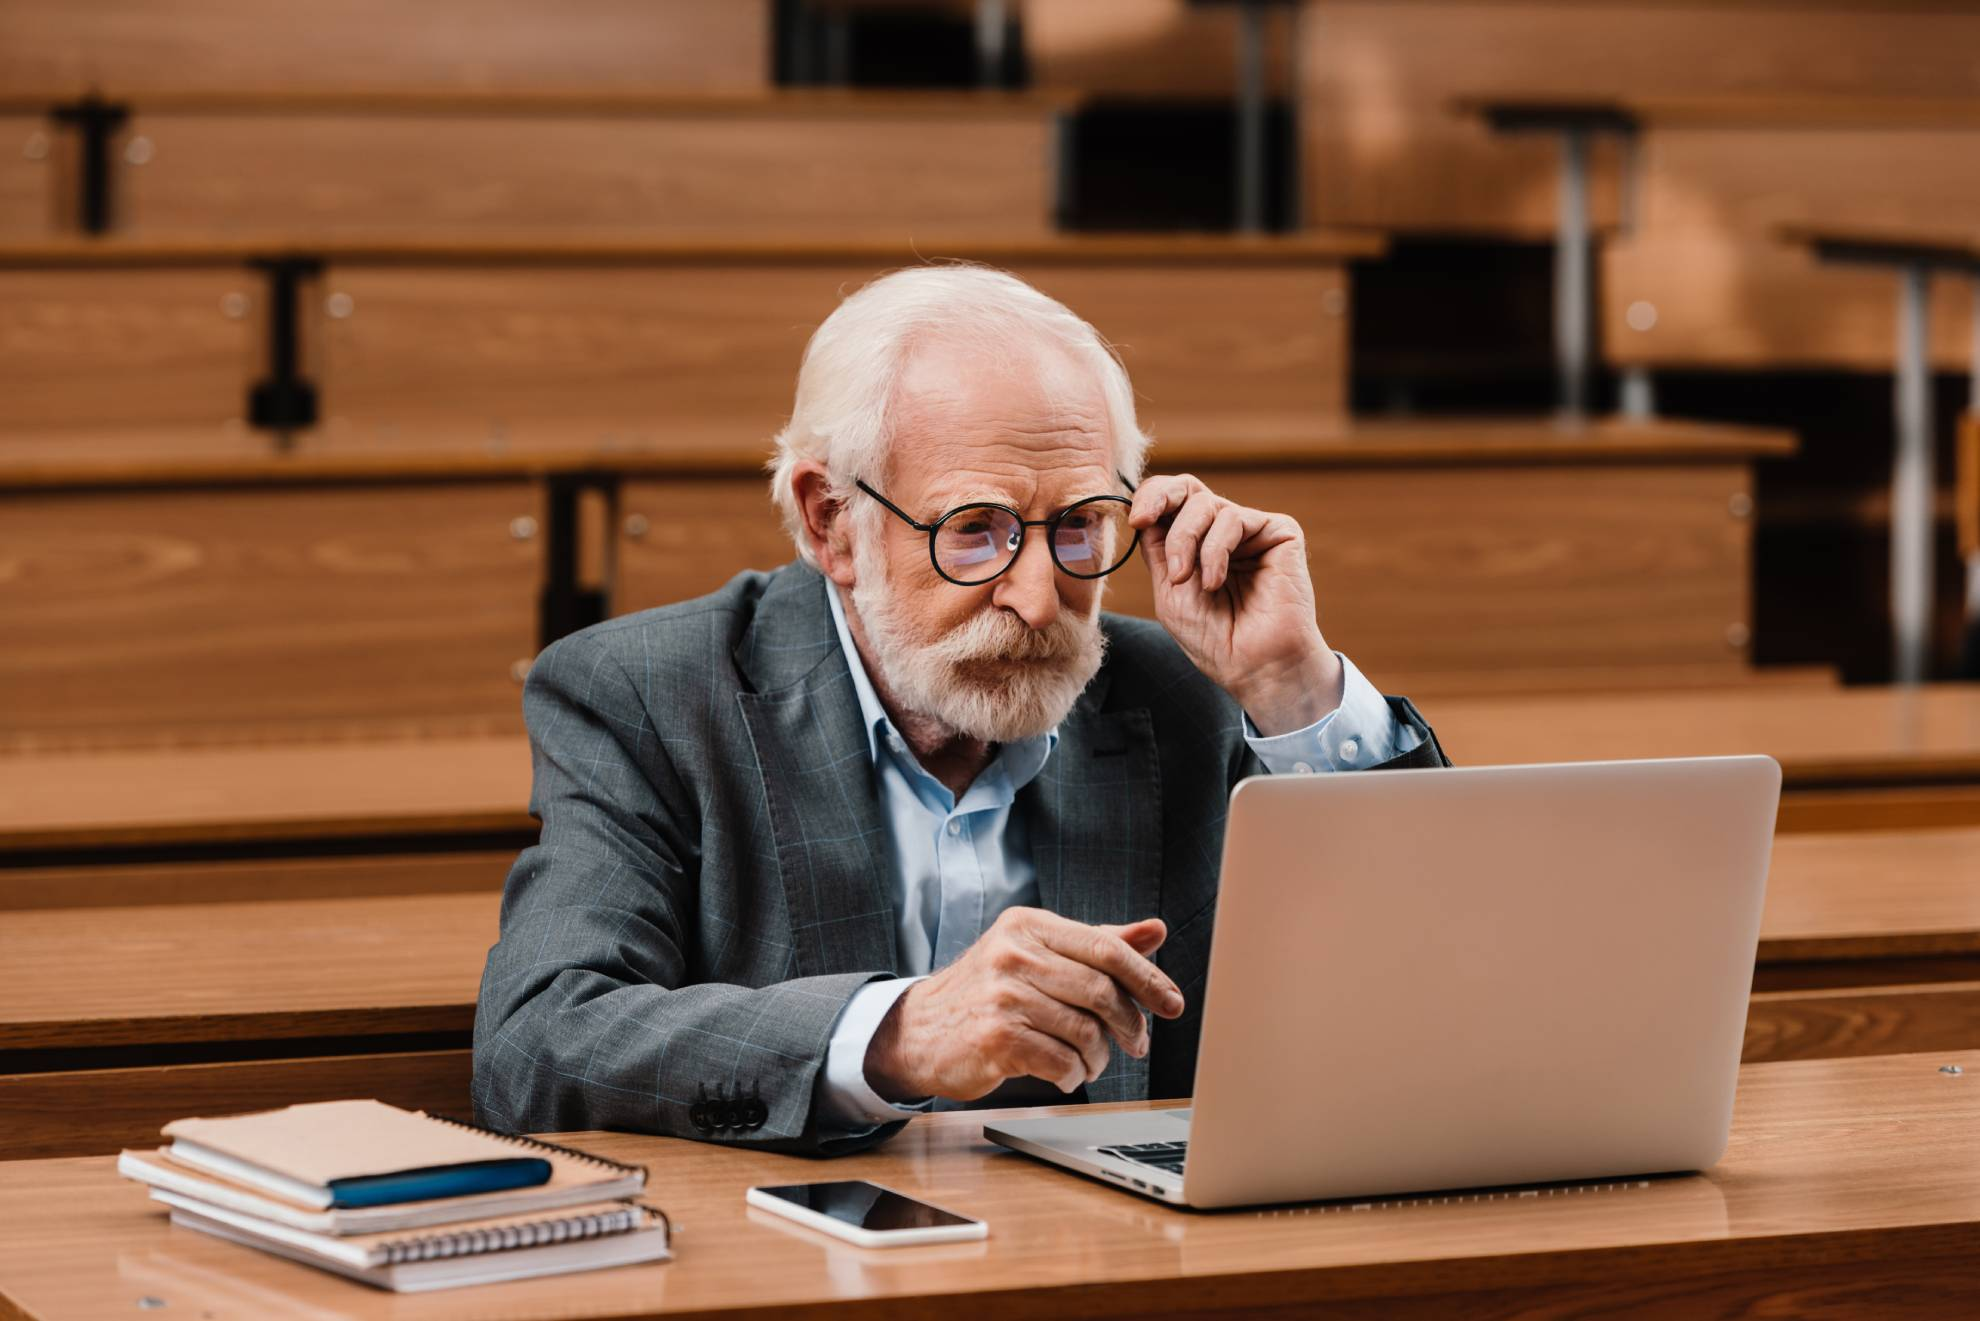 grey-hair-professor-looking-at-laptop-N6D95GT (2)